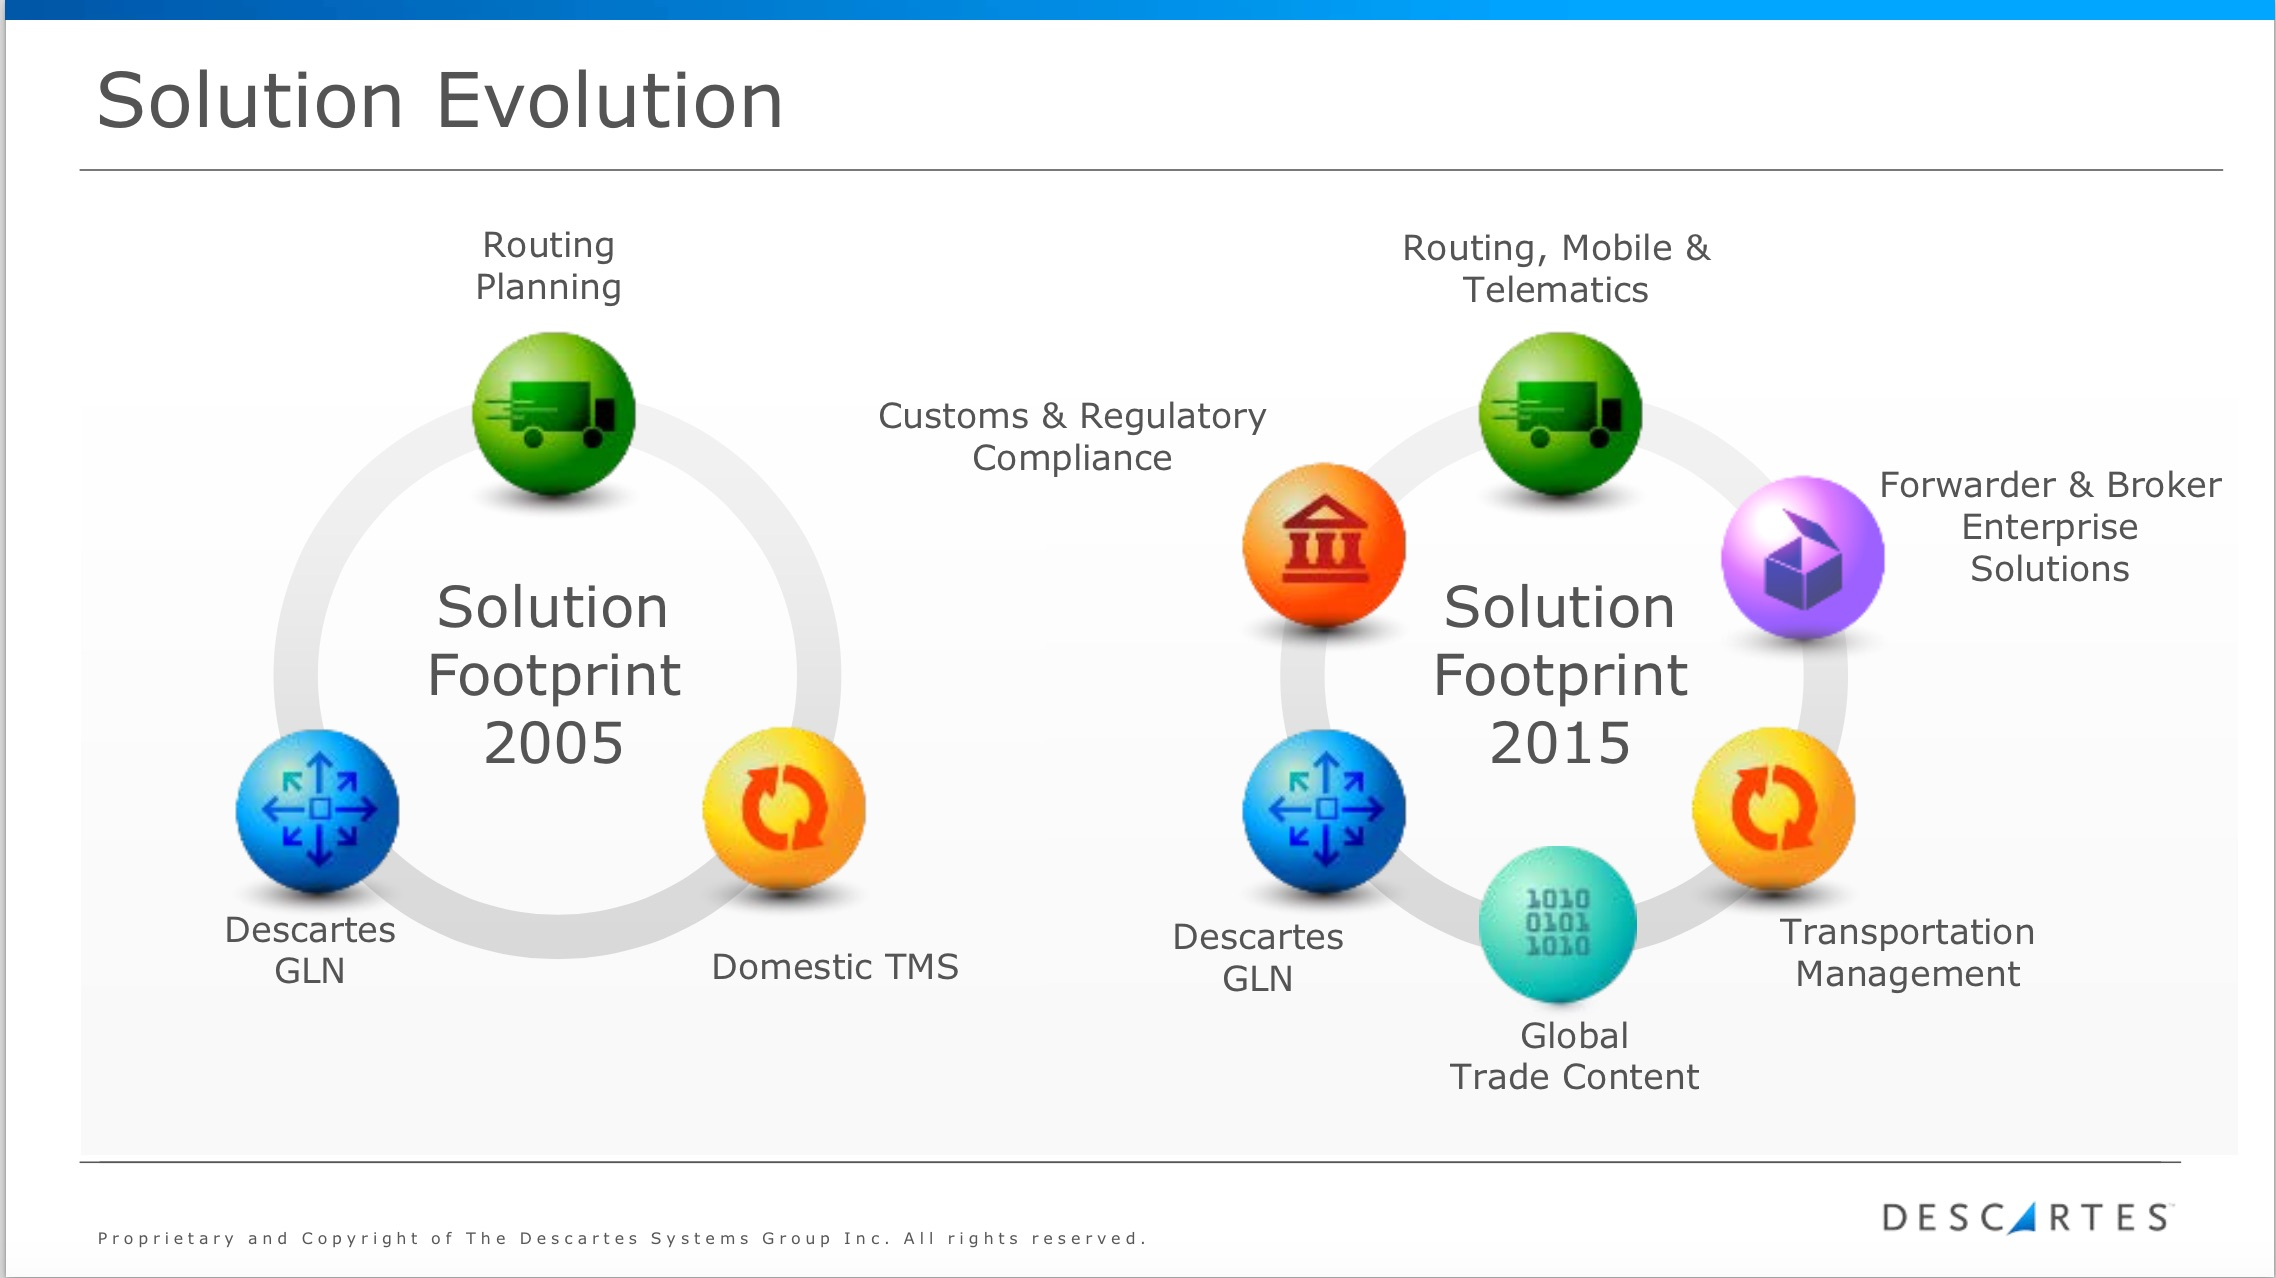 transnational solution evolution The evolution of organizational structure luciana silvestri, harvard business school june 6, 2012 april 5, 2017 share tweet share +1 sections business topics business strategy organizational theory and resources come together to yield an integrated solution.